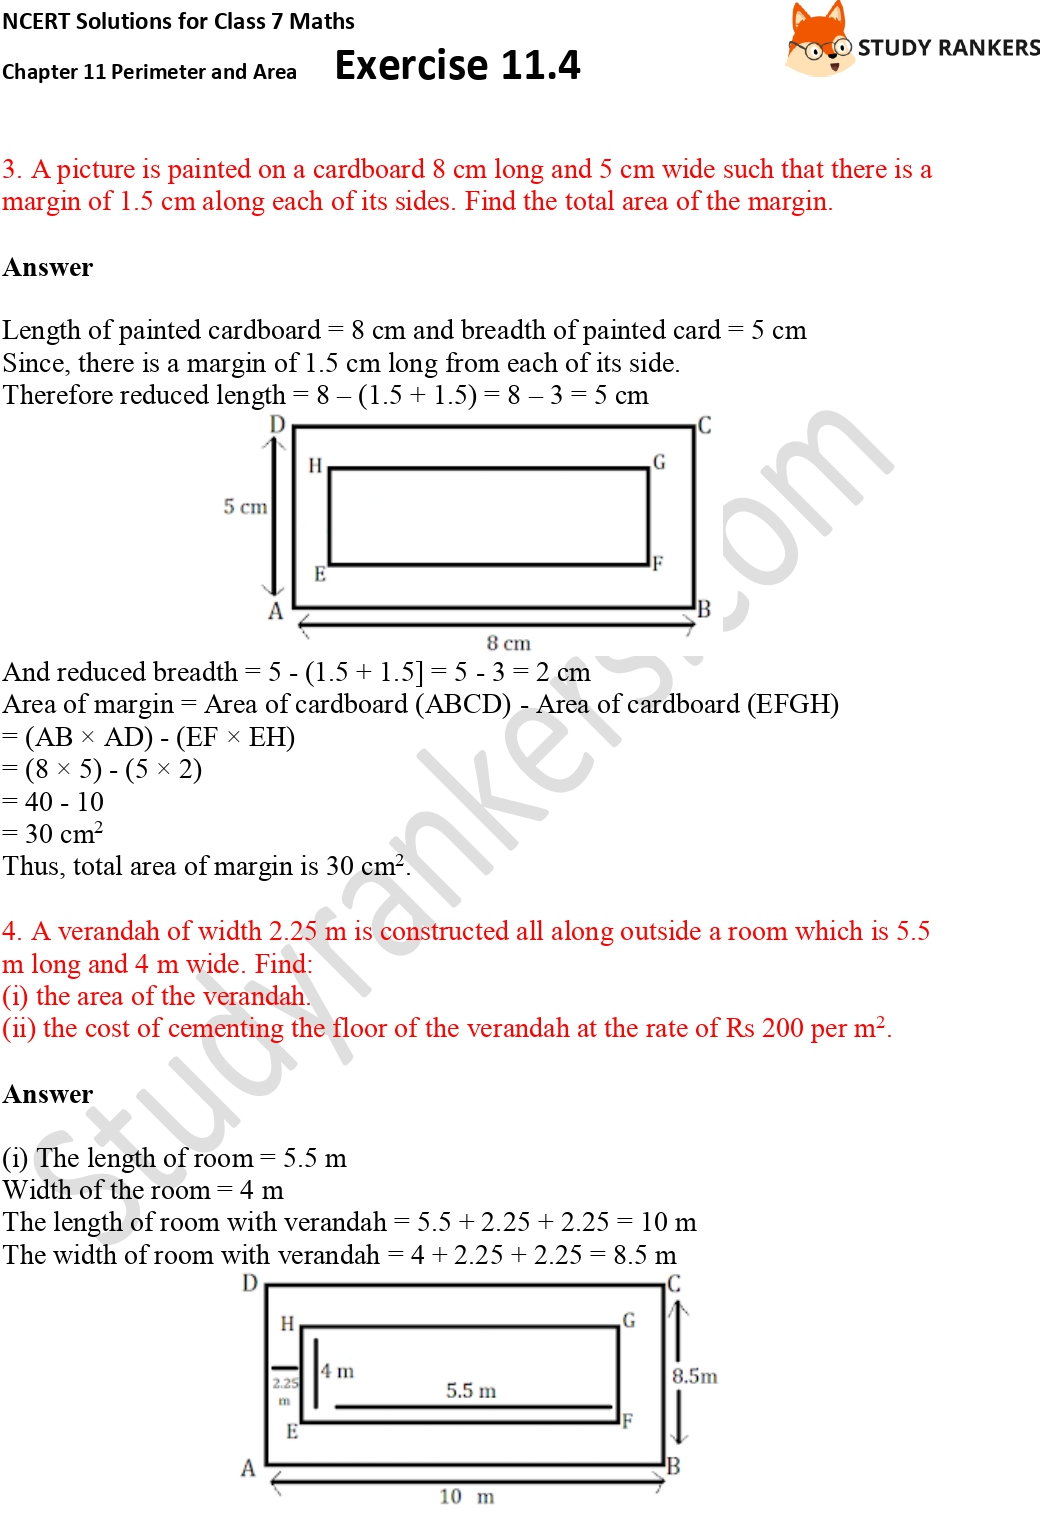 NCERT Solutions for Class 7 Maths Ch 11 Perimeter and Area Exercise 11.4 Part 2